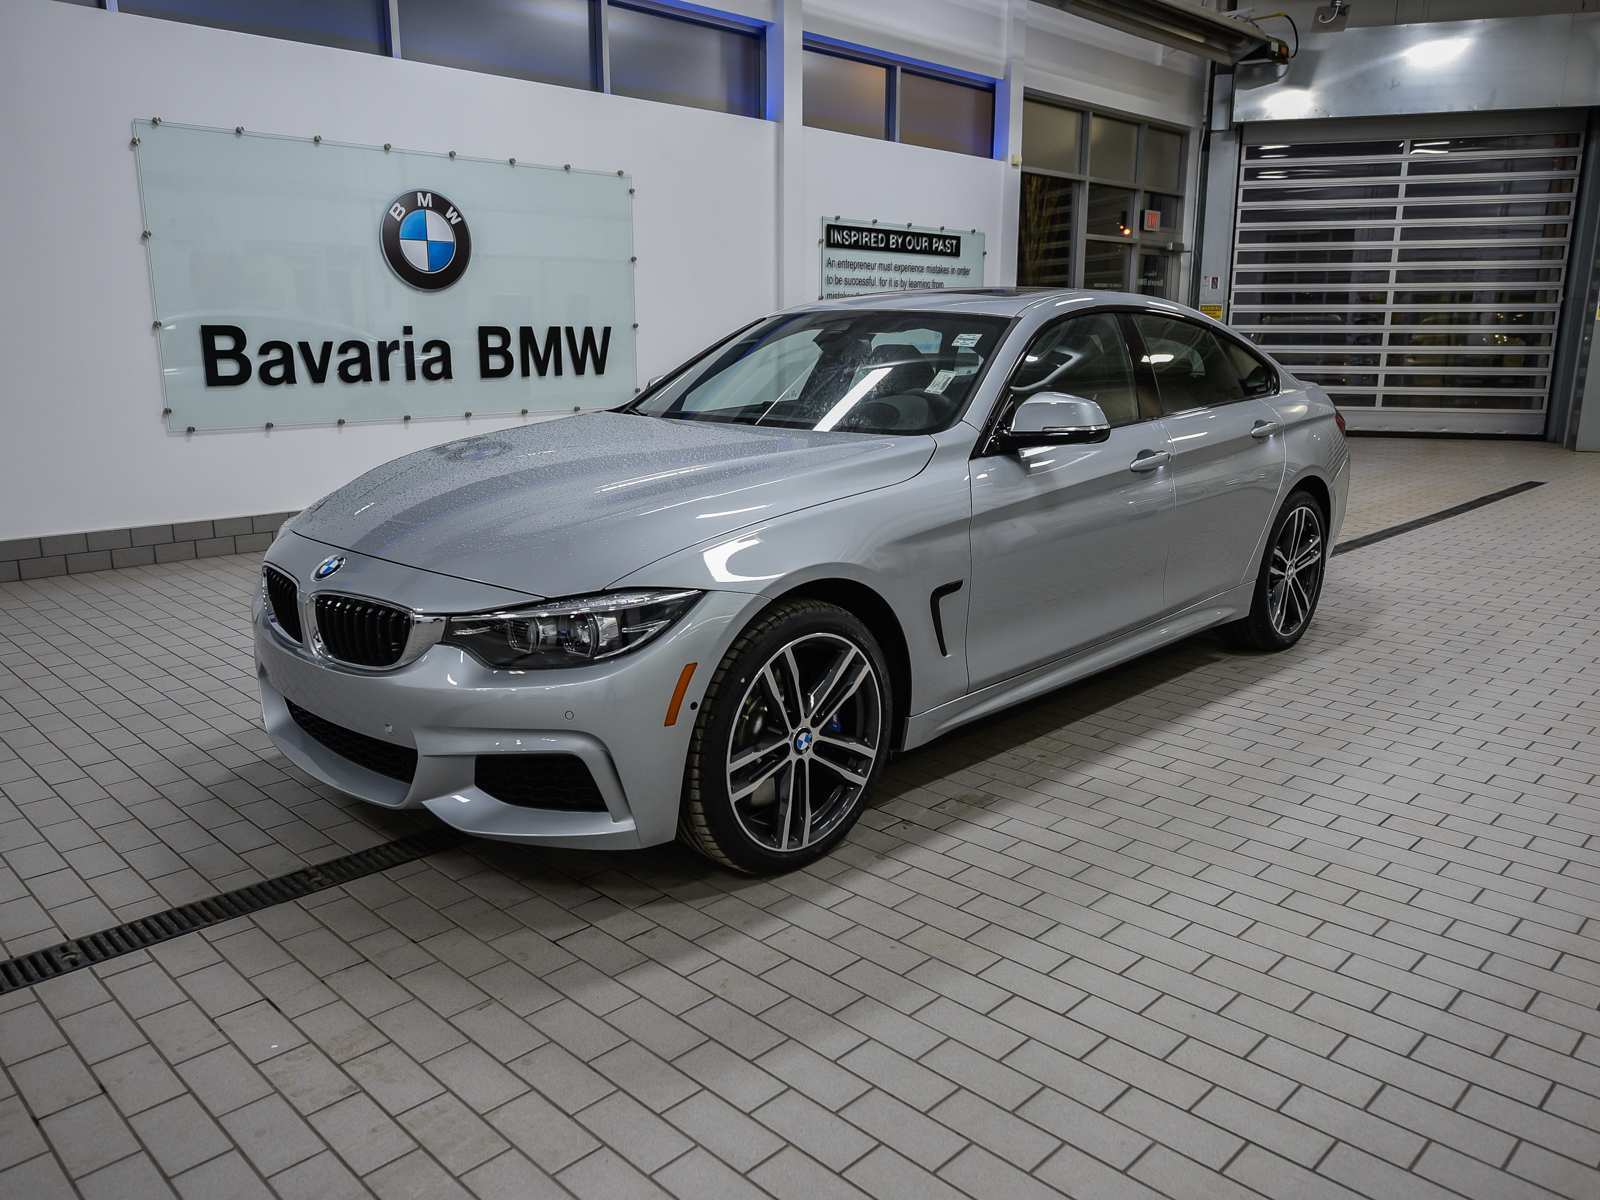 20 Concept of 2019 Bmw 440I Xdrive Gran Coupe Price for 2019 Bmw 440I Xdrive Gran Coupe